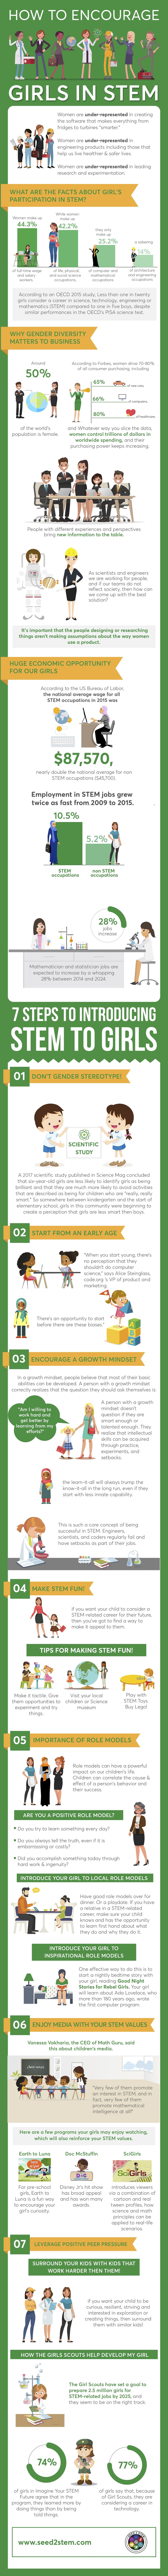 How to Encourage Girls in STEM